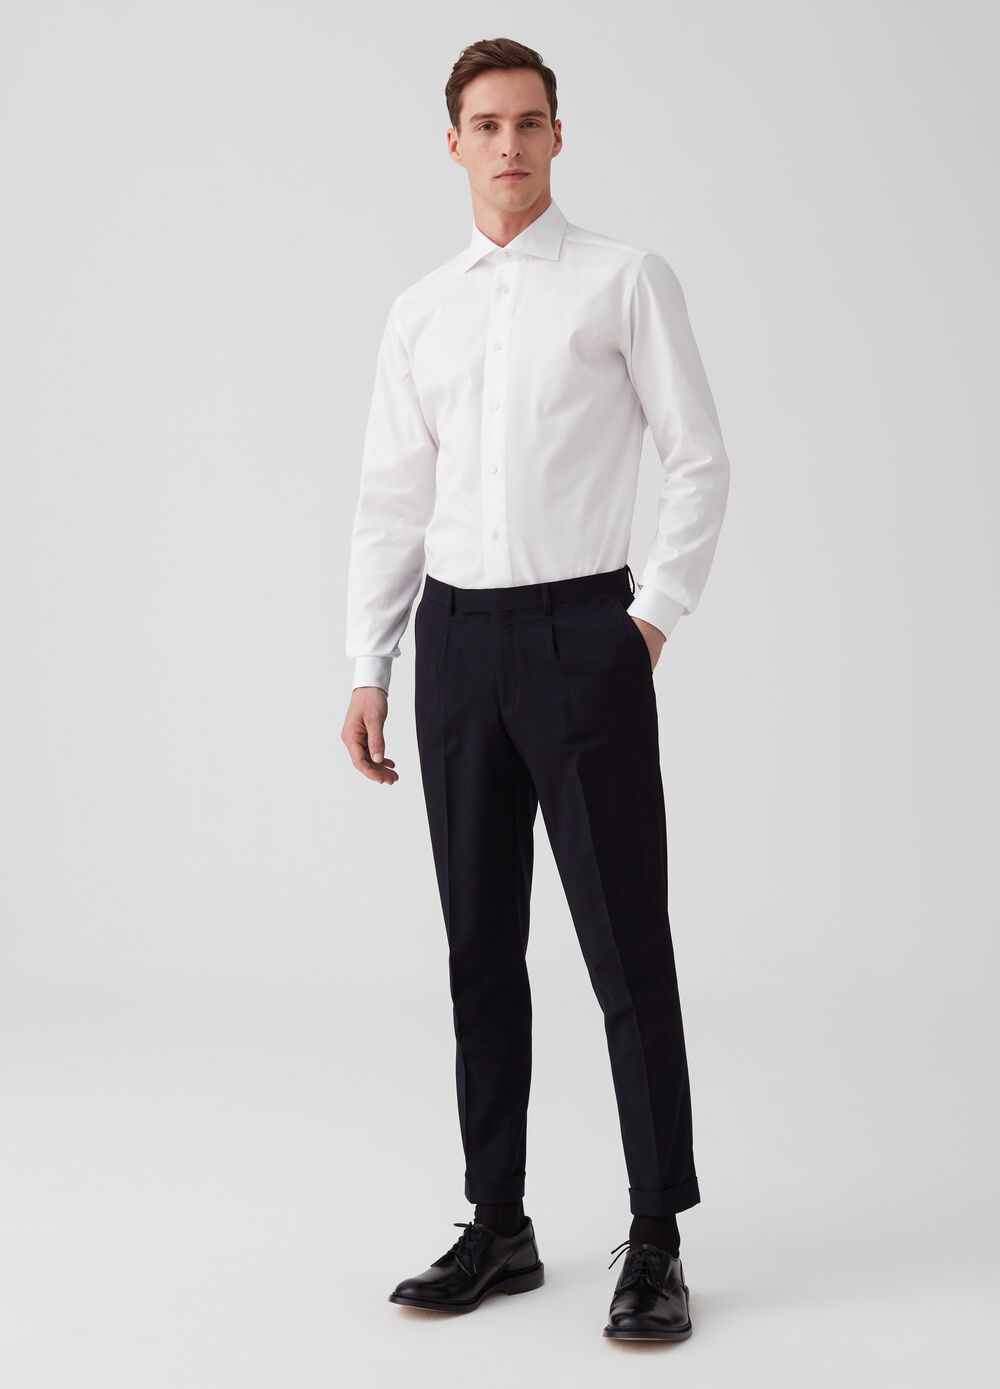 Custom-fit stretch trousers with pockets